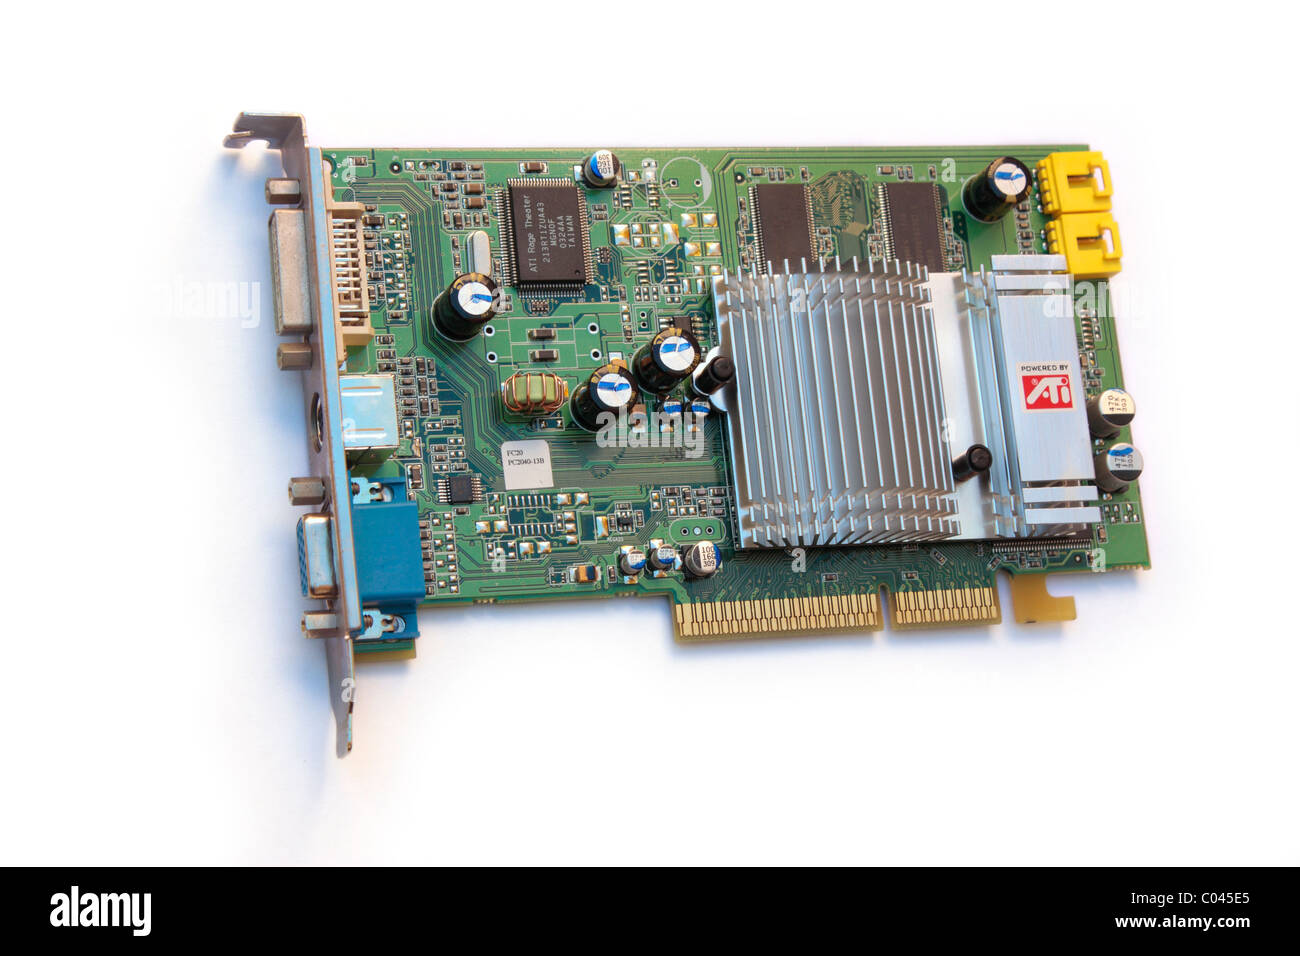 Computer graphics card. Editorial use only. Stock Photo